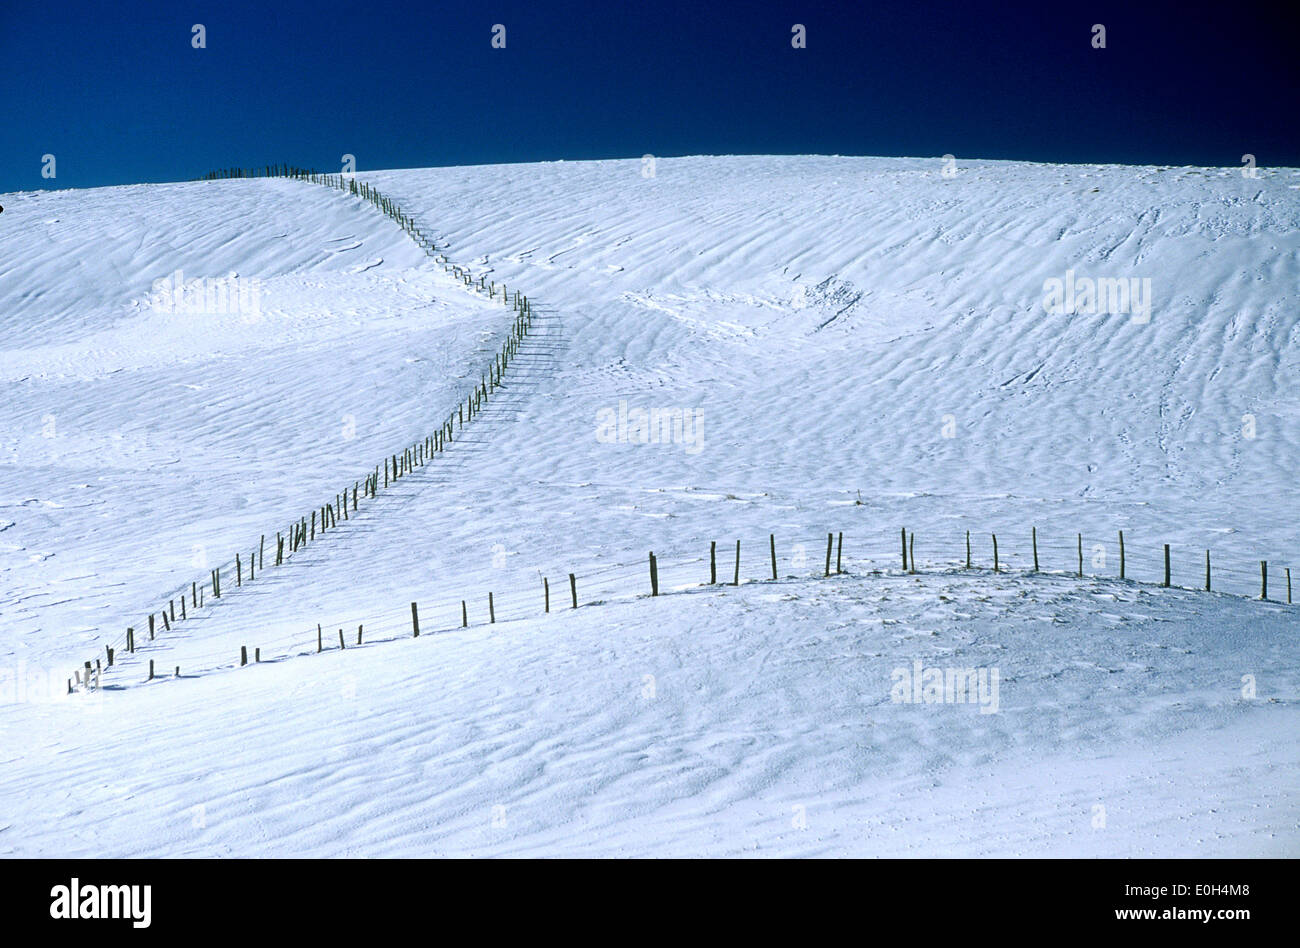 Hillside with snow in winter and fence line - winter landscape snow scene - Stock Image